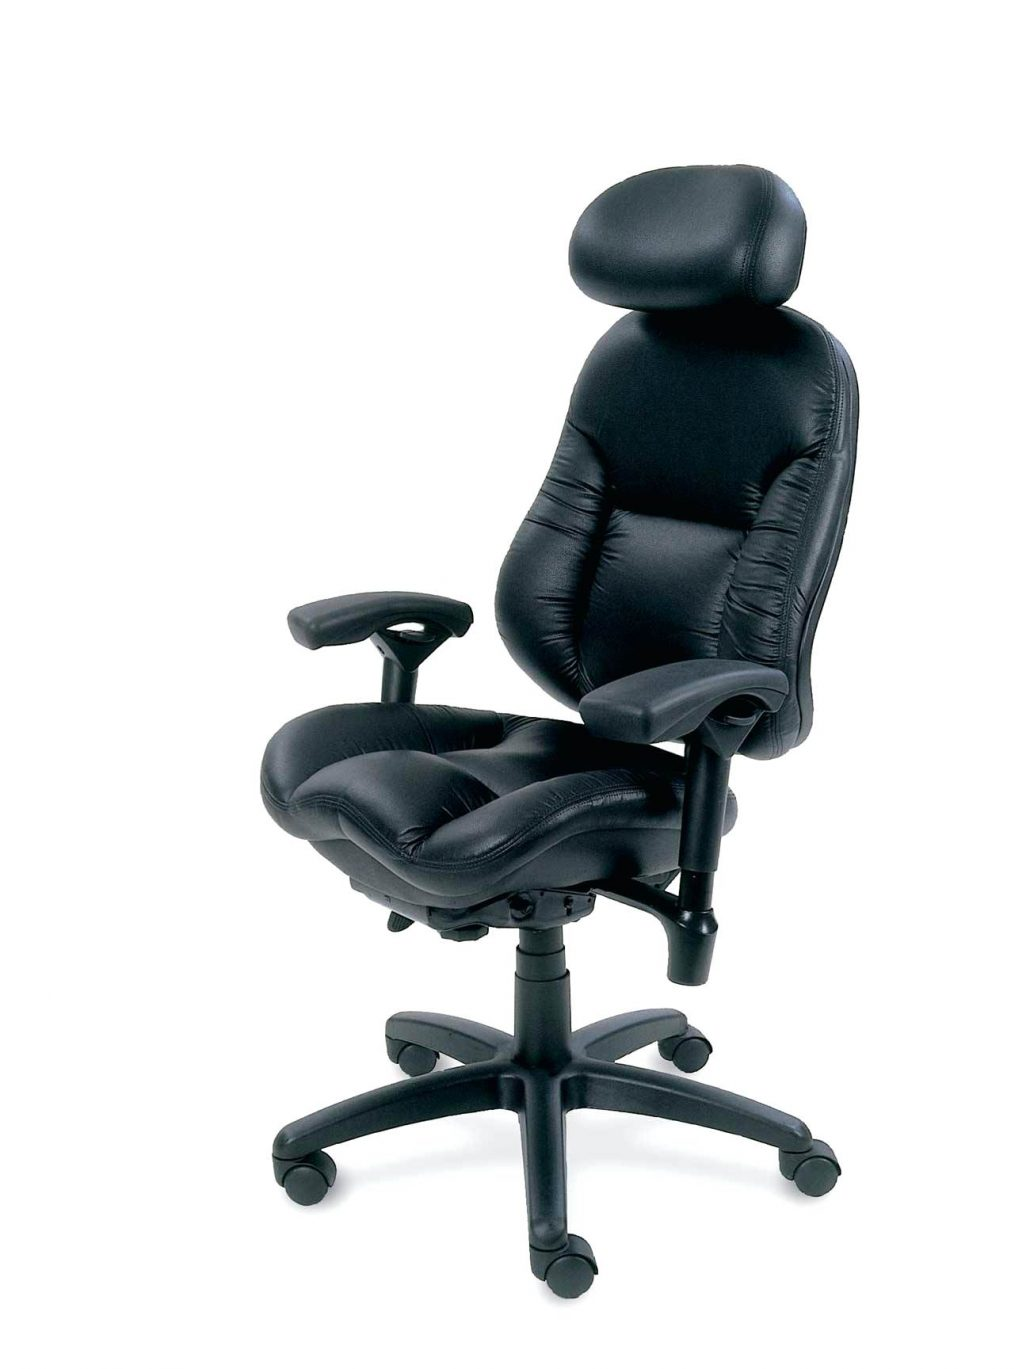 home chairs back problems chair covers birmingham uk best desk for lower ergonomic